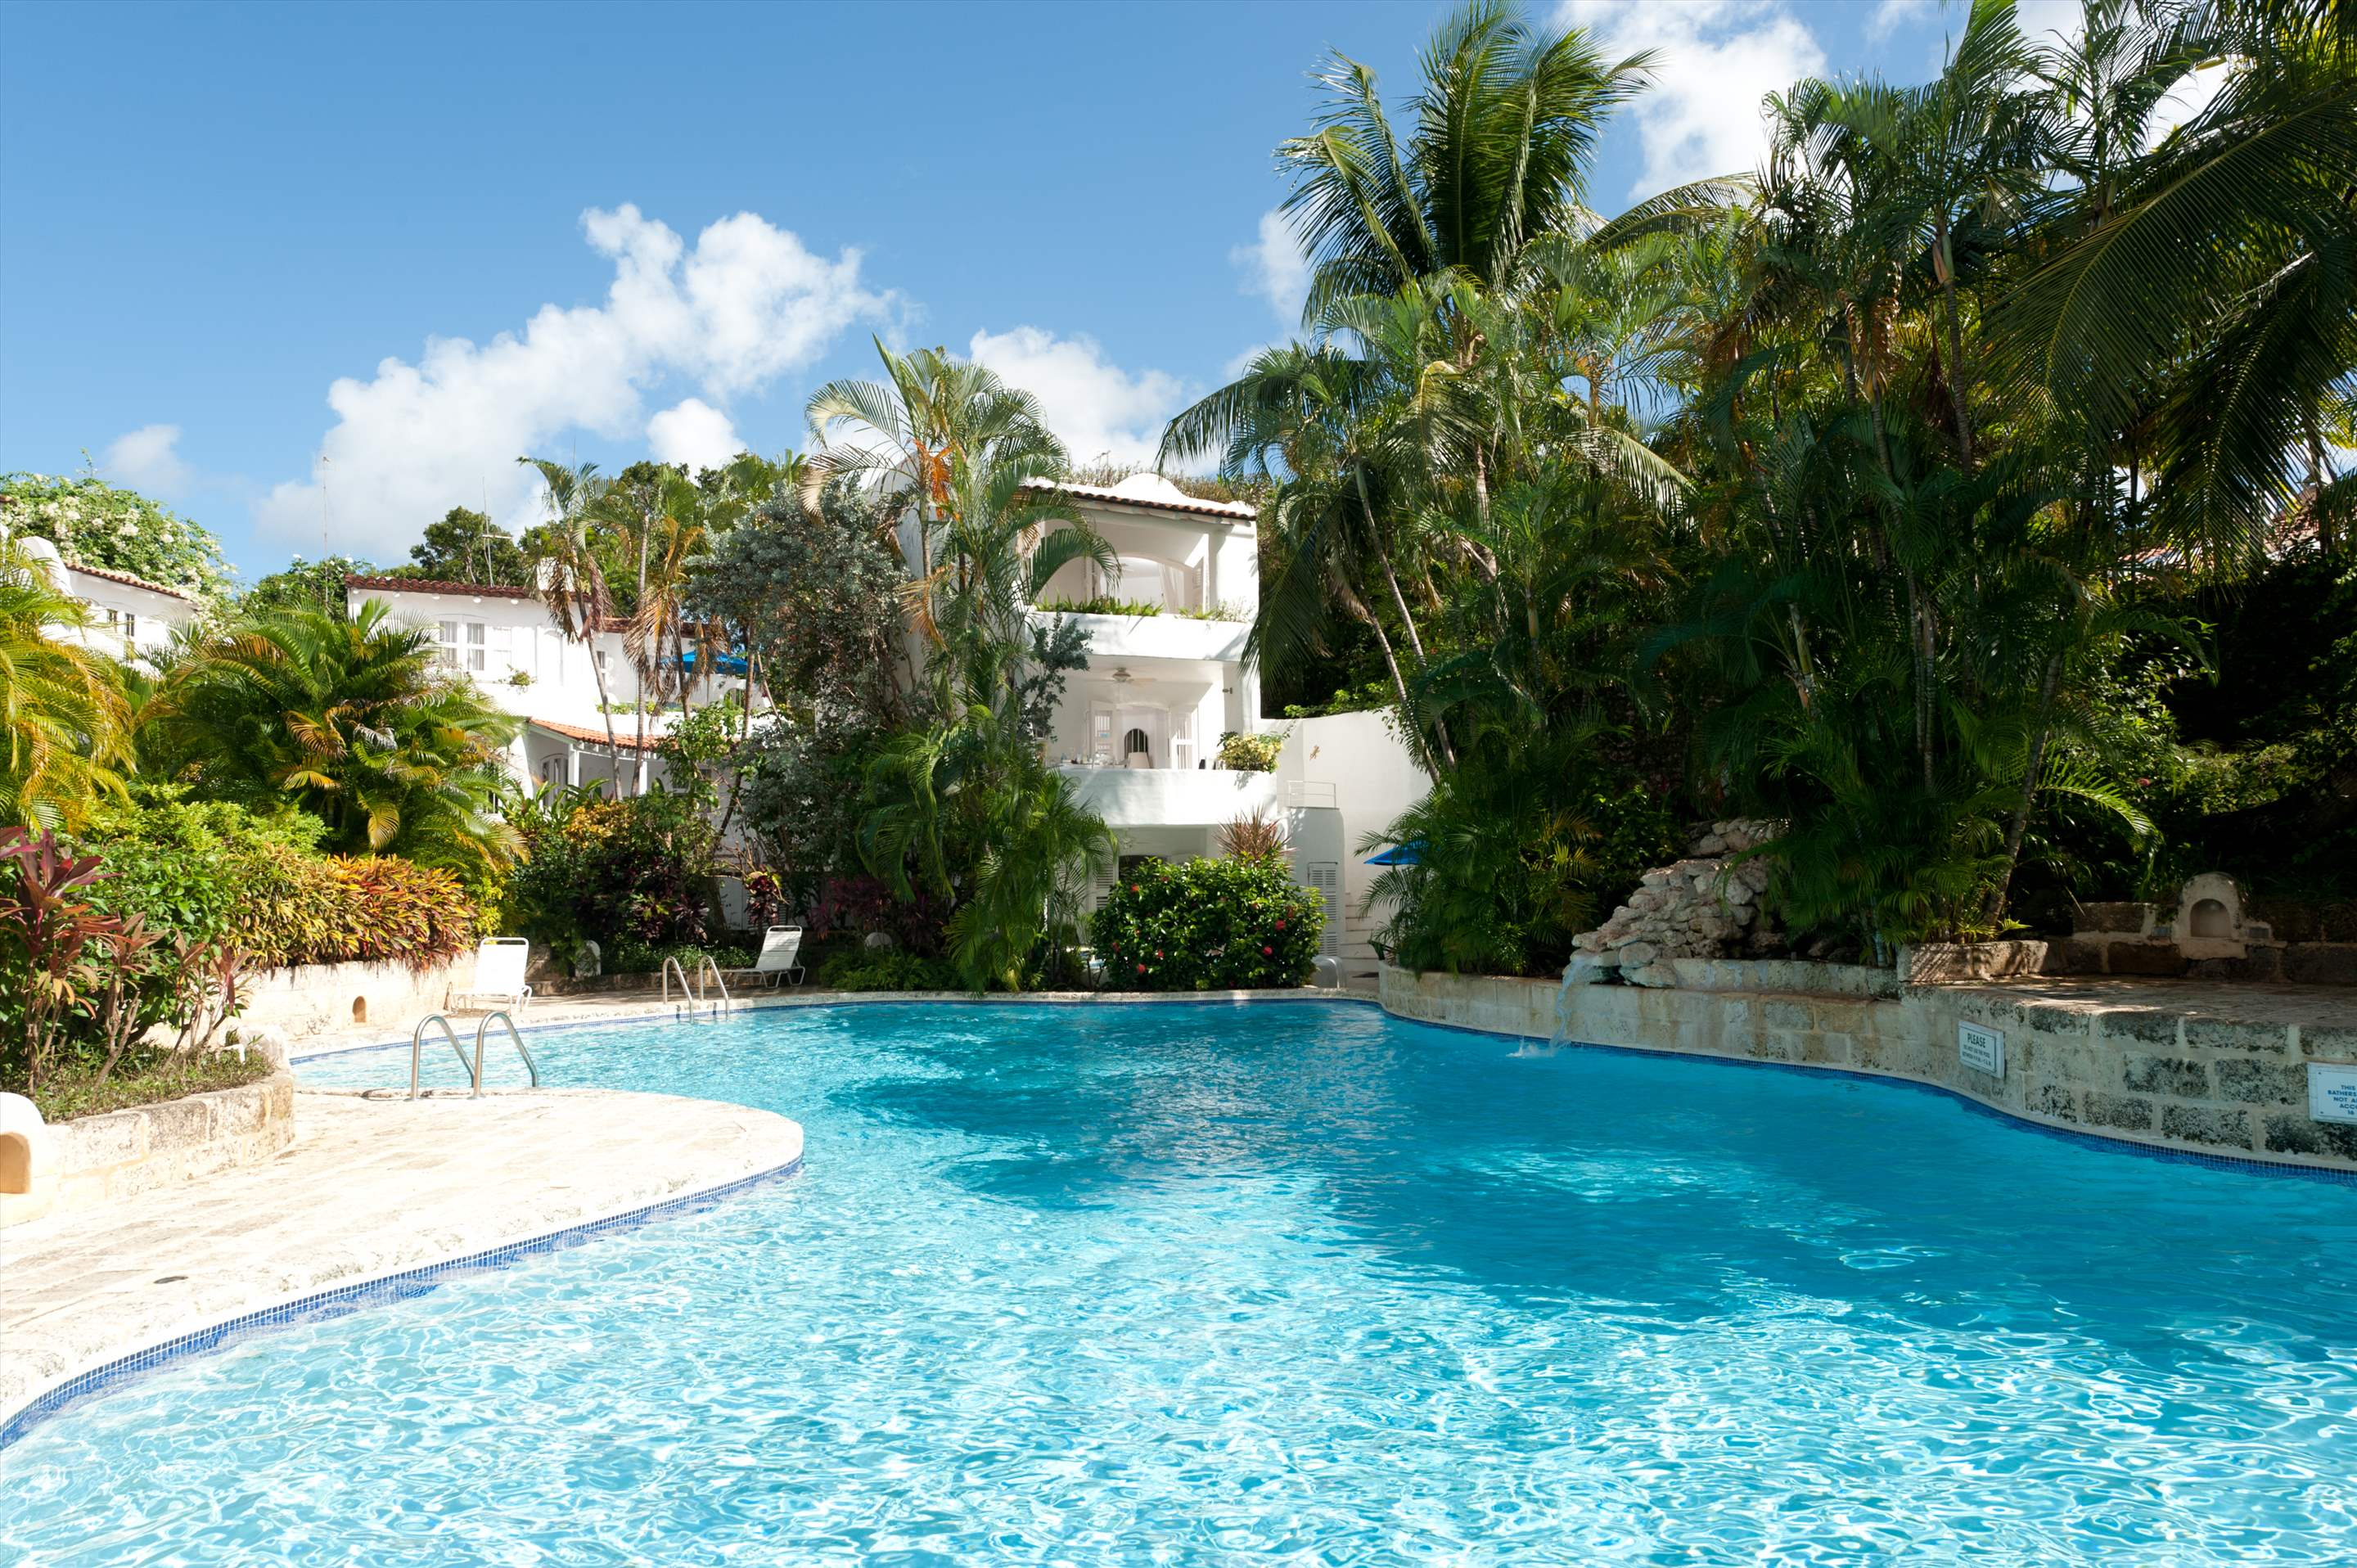 Merlin Bay Gingerbread, 3 bedroom villa in St. James & West Coast, Barbados Photo #1